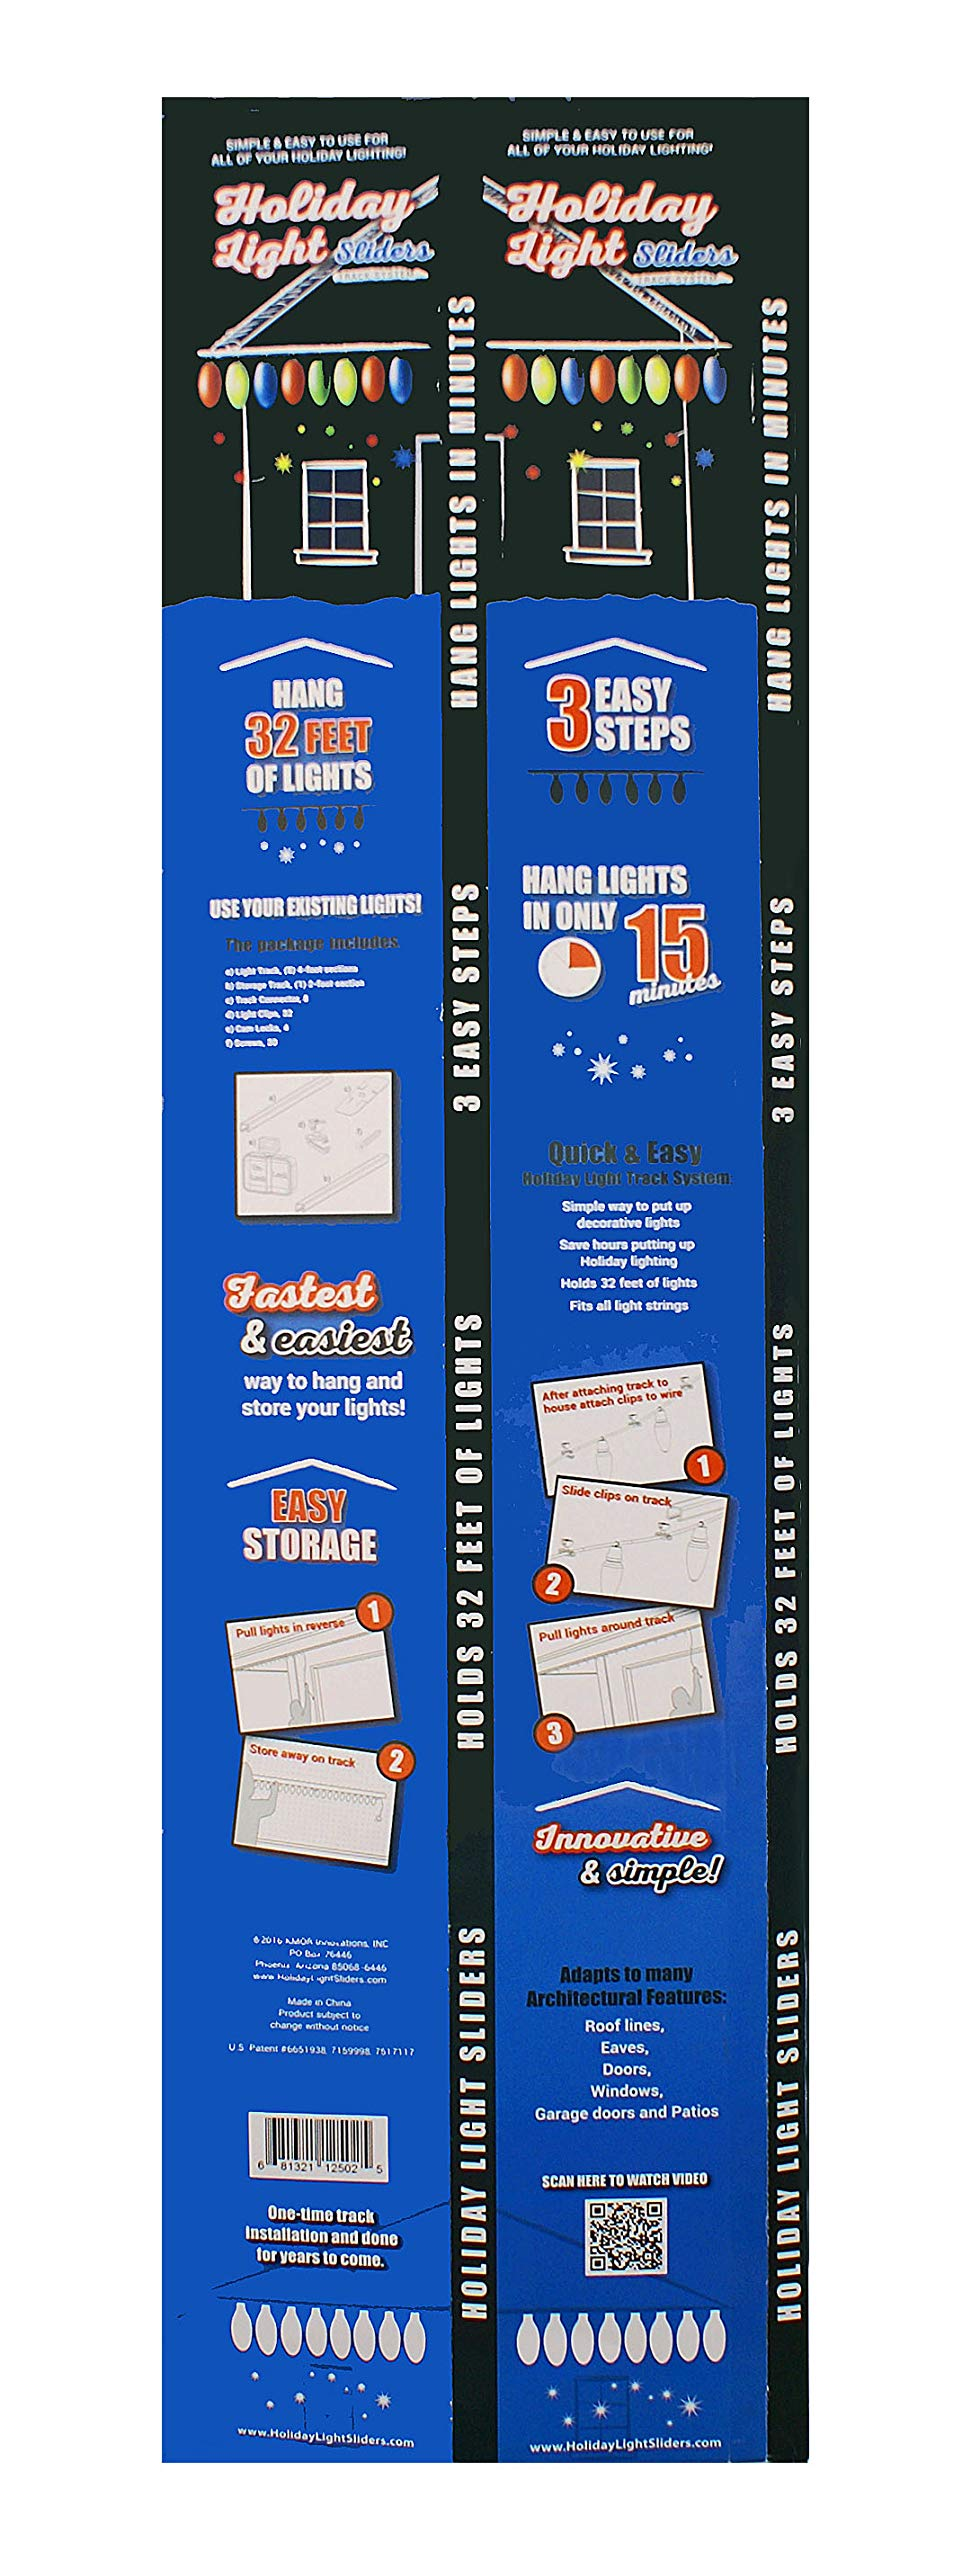 Holiday Light Sliders, A Light Hanging System That Provides a Quicker, Easier, More Professional Holiday Light Display in Minutes. Just Like a Curtain Rod for Exterior Holiday Lights. 2 Track Kits